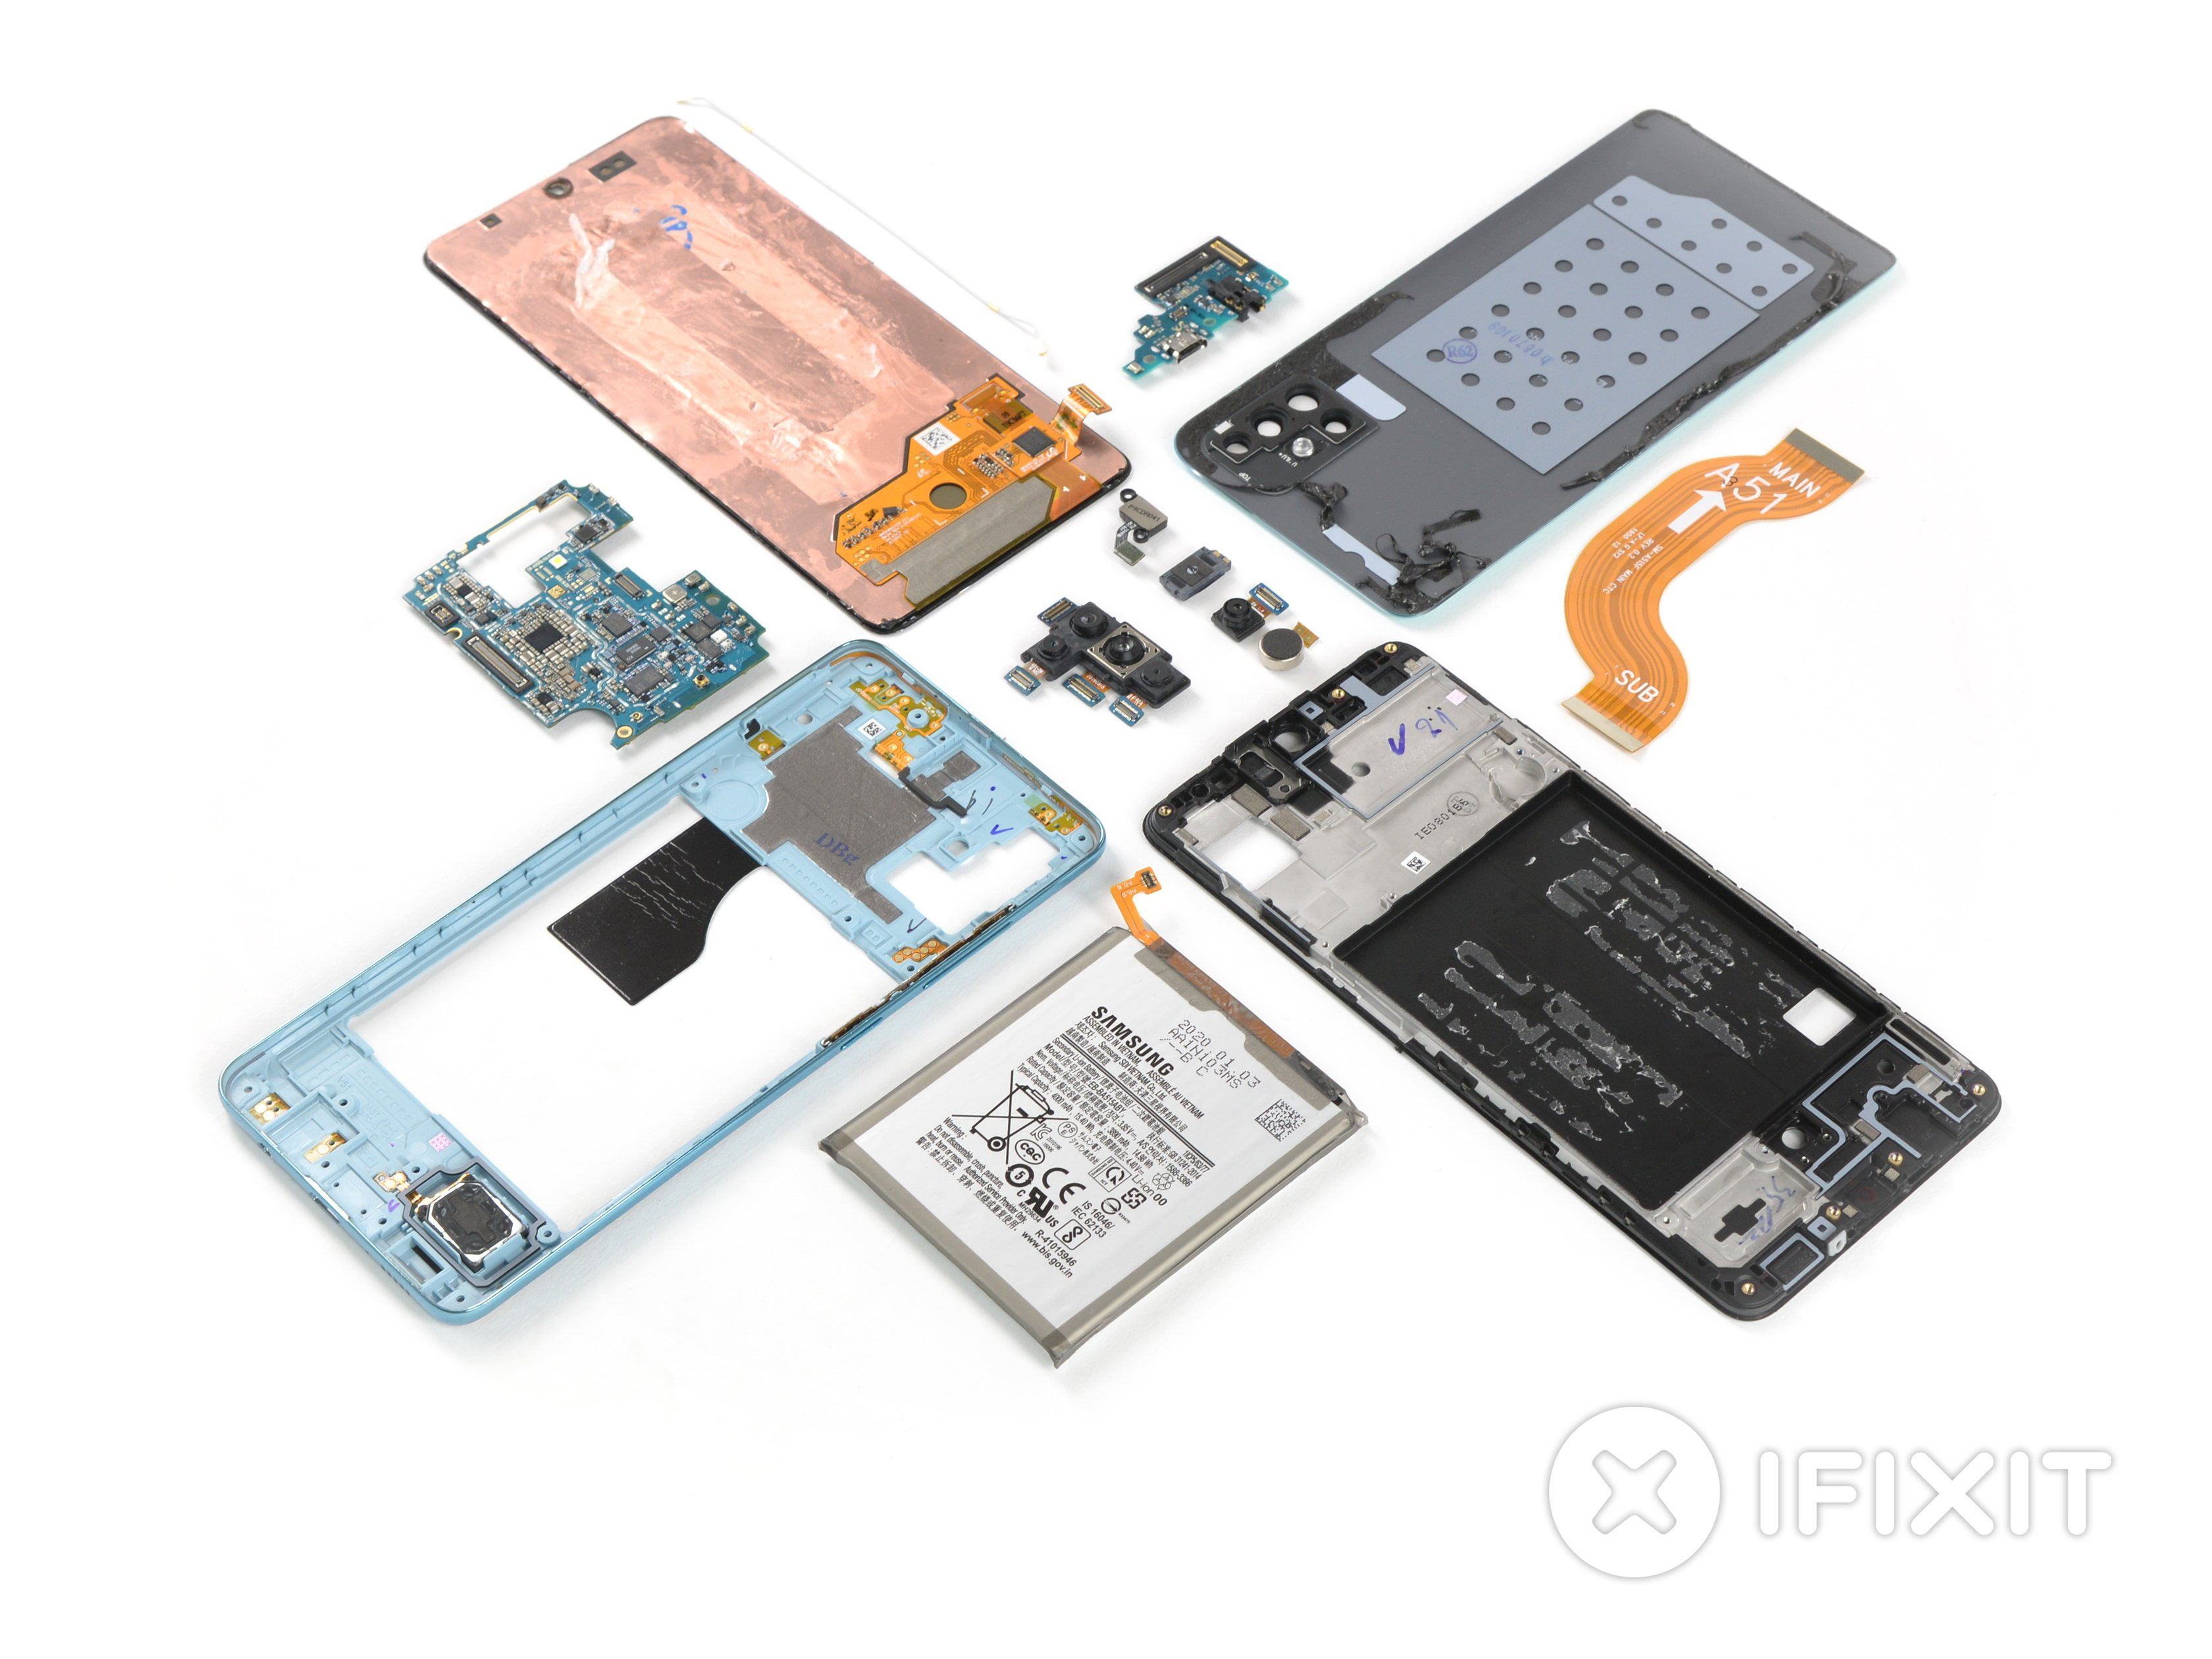 Samsung Galaxy A51 Teardown Ifixit